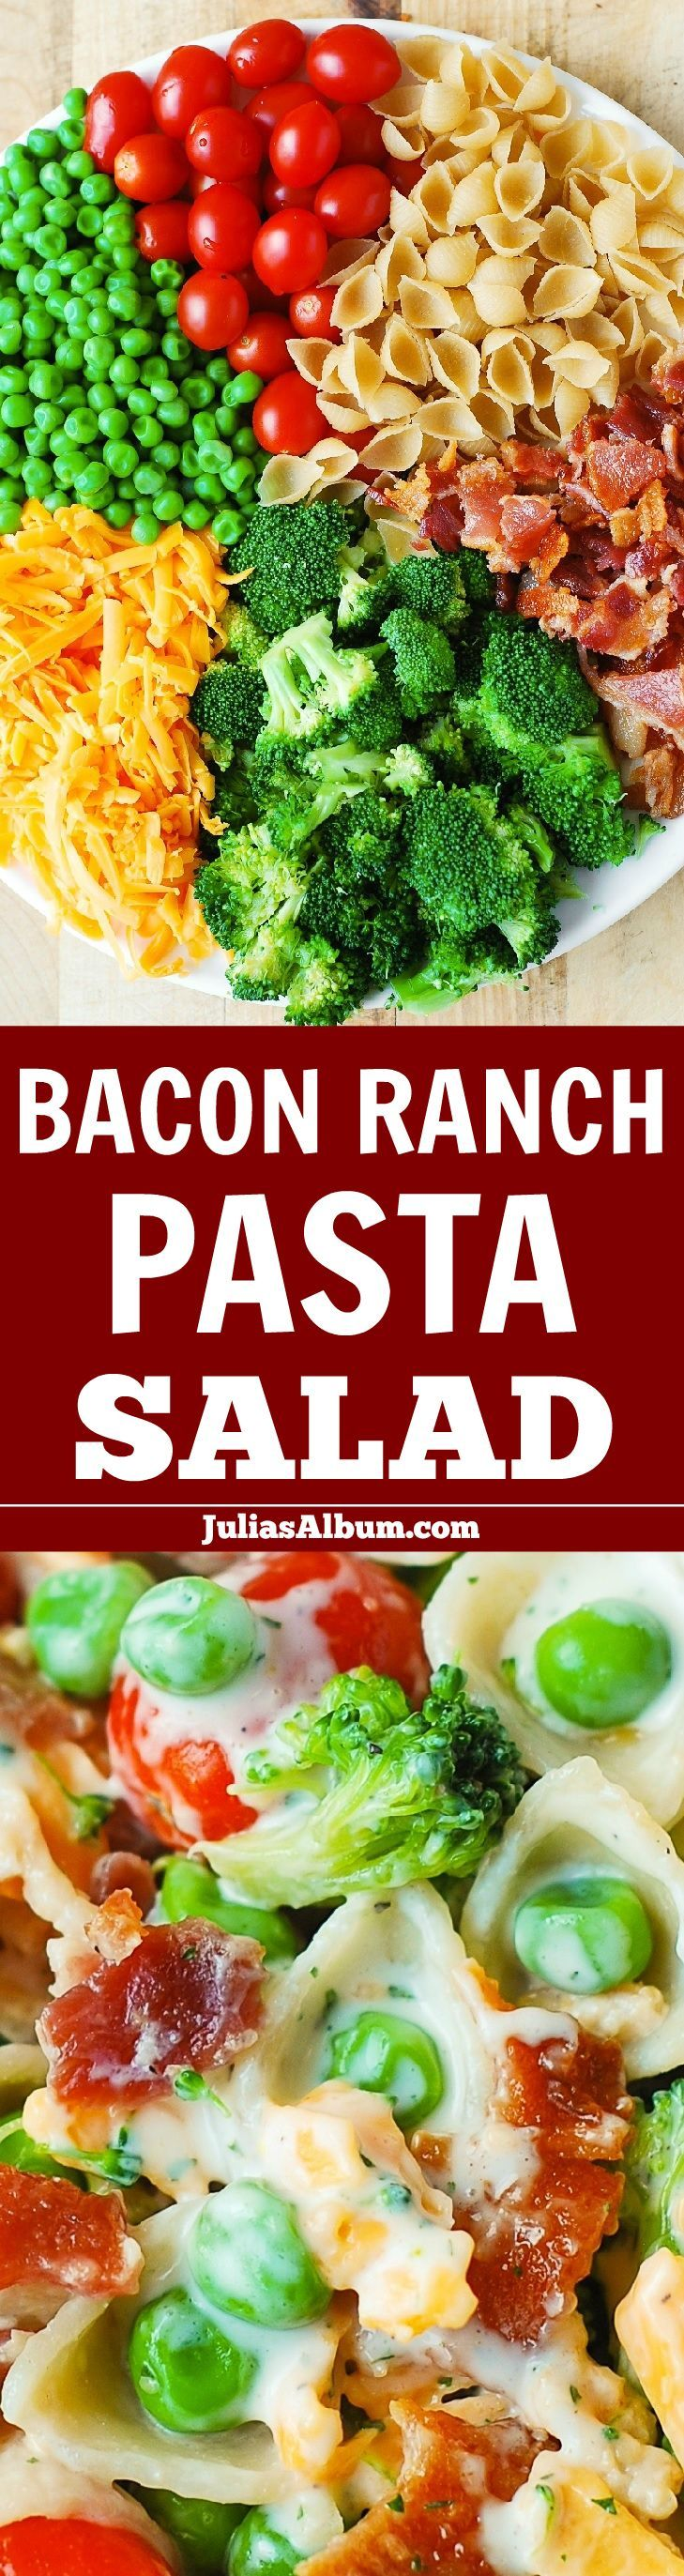 Broccoli Bacon Ranch Pasta Salad - LOADED with veggies (broccoli, cherry tomatoes, sweet peas), sharp Cheddar cheese, pasta shells, and bacon!